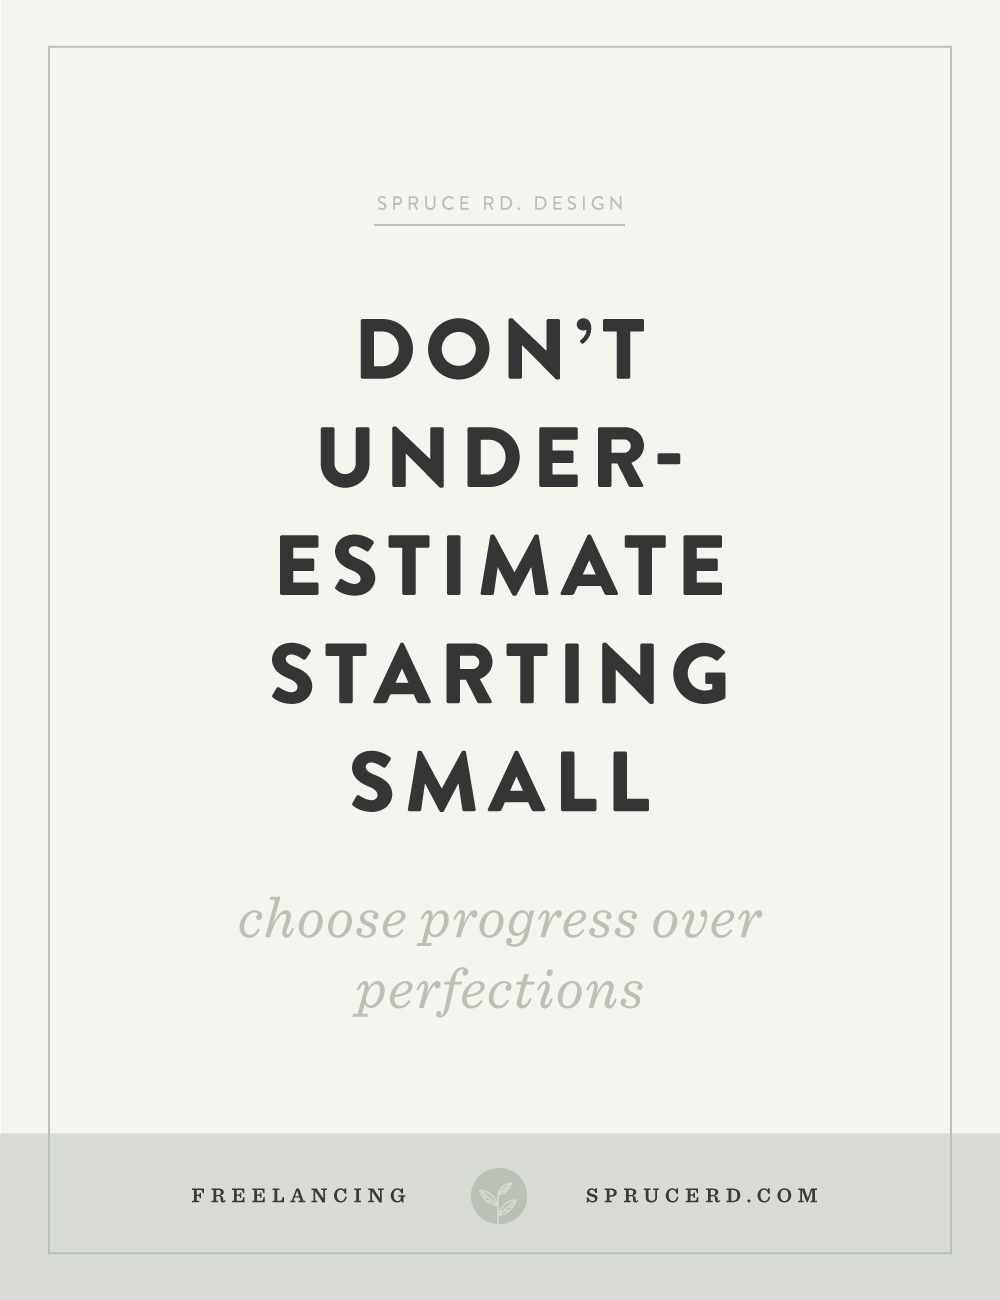 Don't underestimate starting small | Spruce Rd.